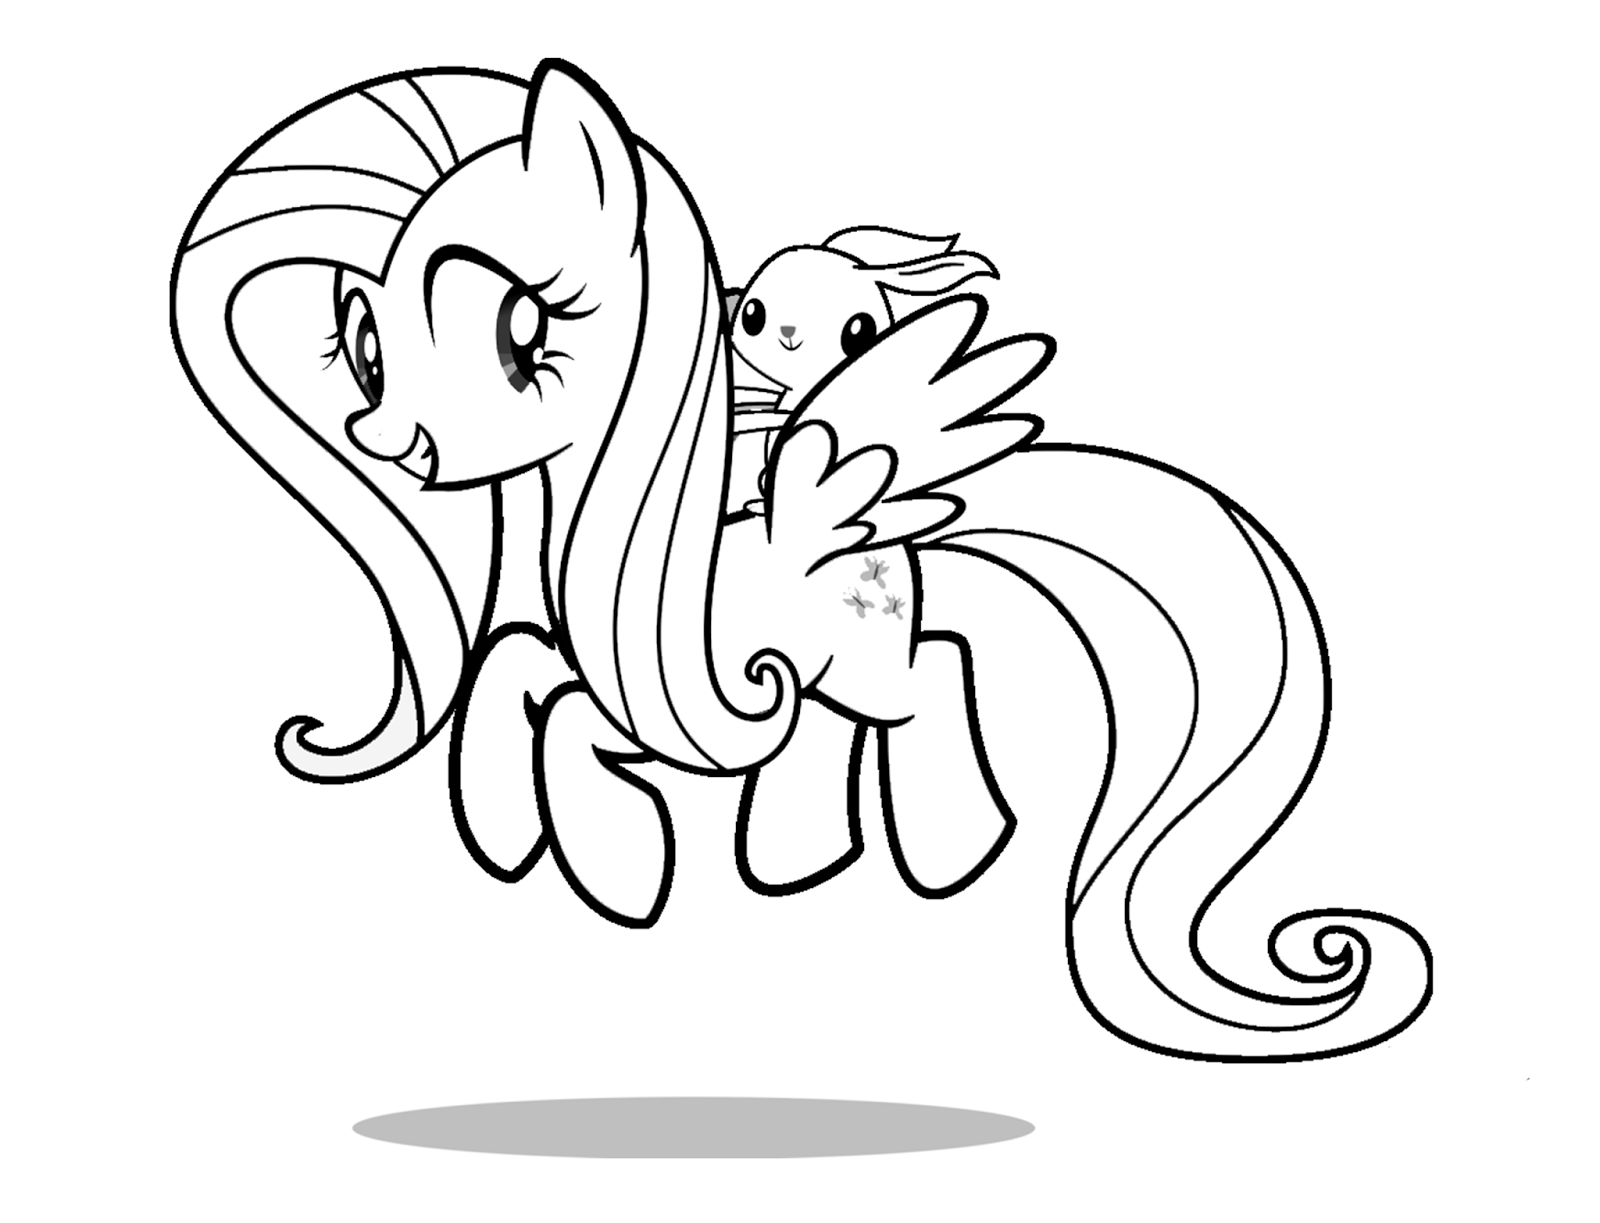 coloring pages of fluttershy fluttershy coloring pages best coloring pages for kids coloring pages of fluttershy